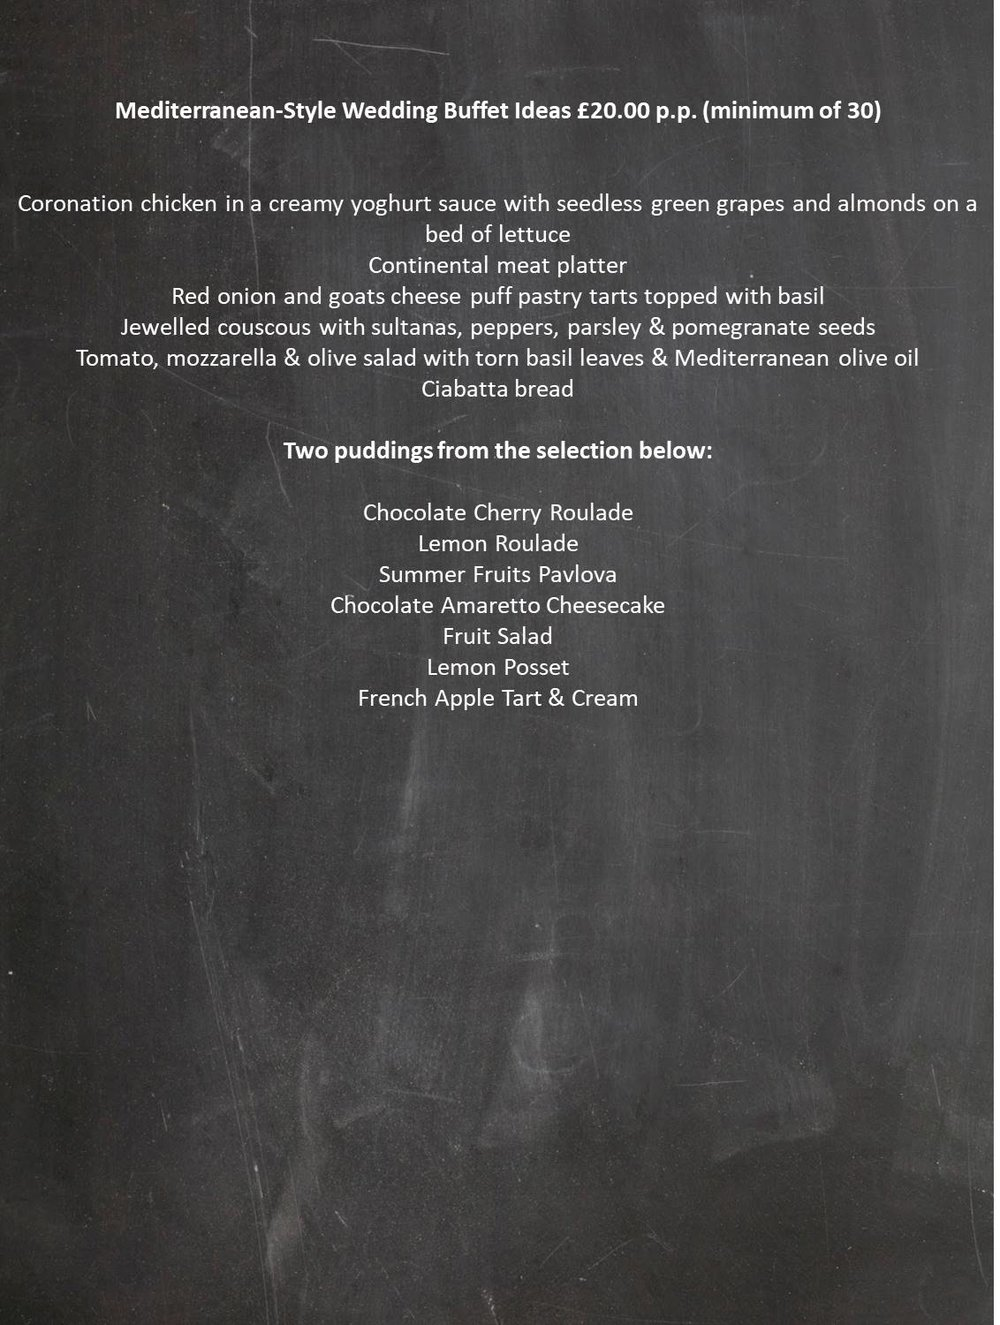 Wedding menu2.jpg